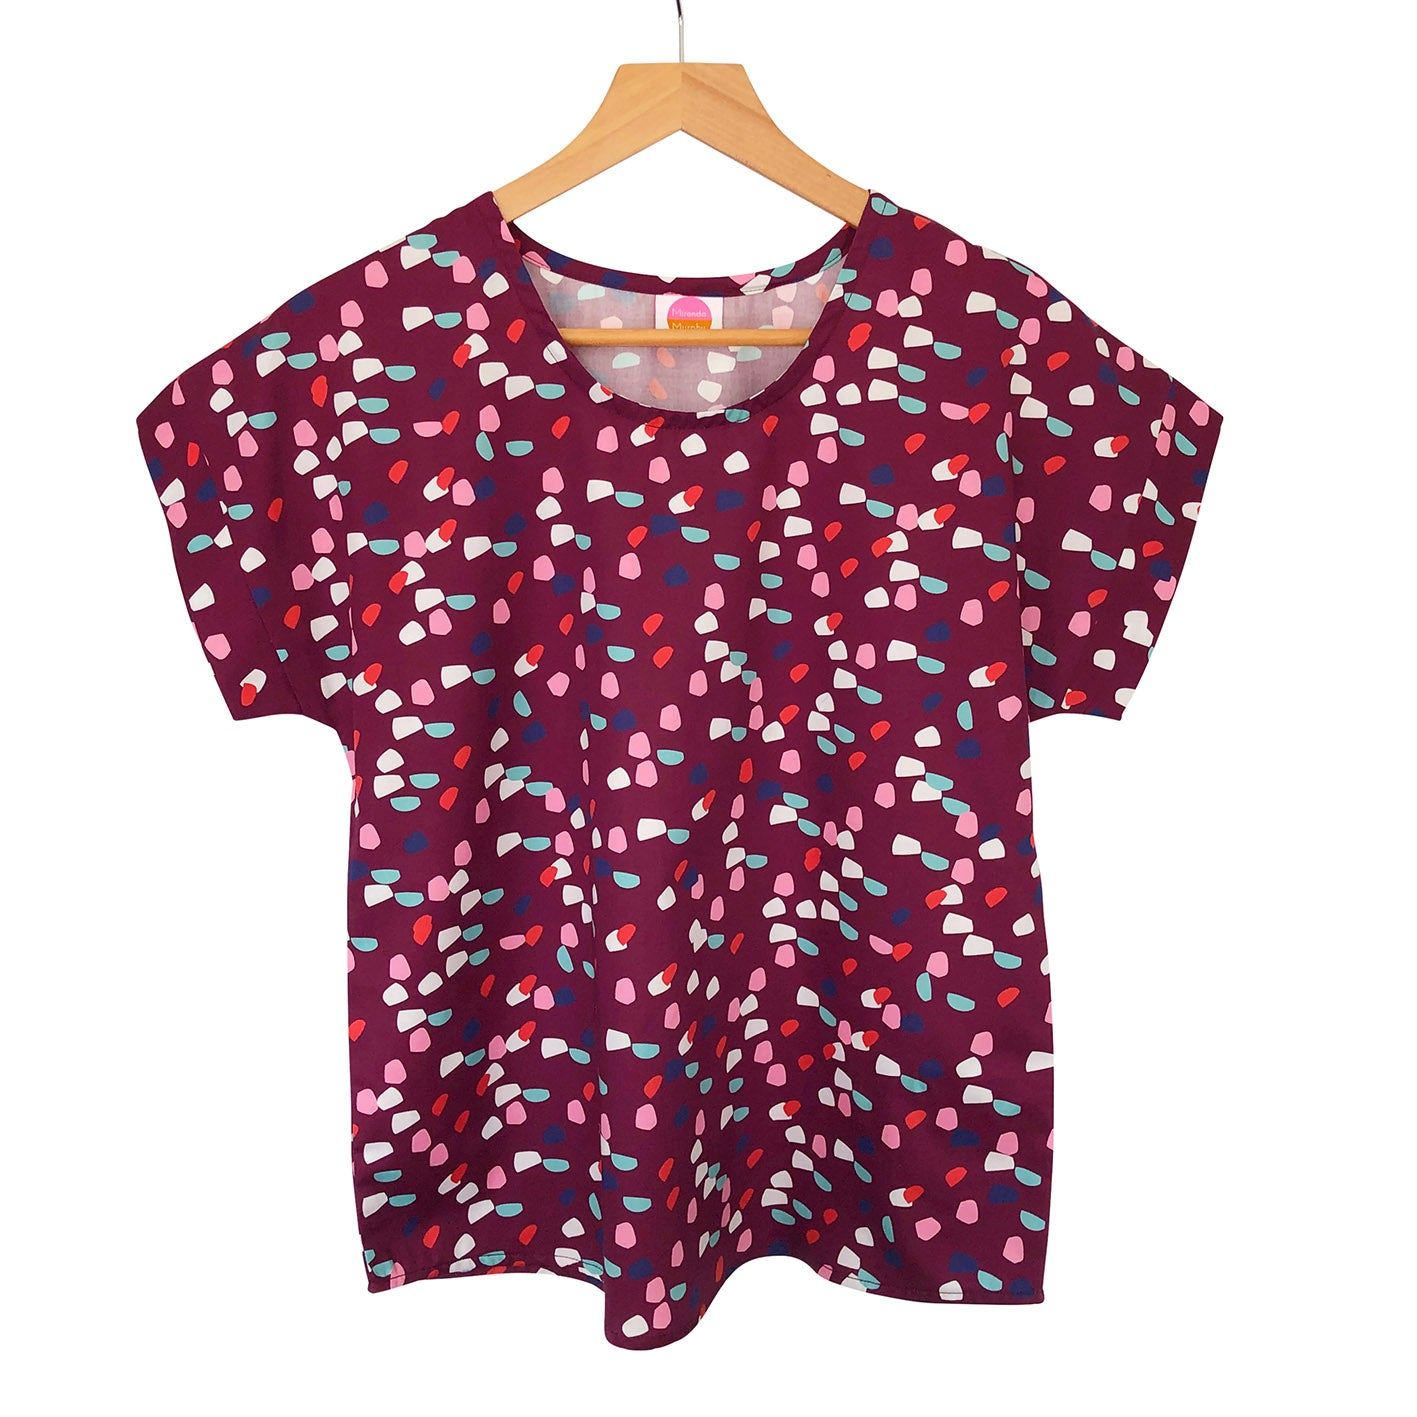 Boxy Top - Pixels Burgundy (Made to order)